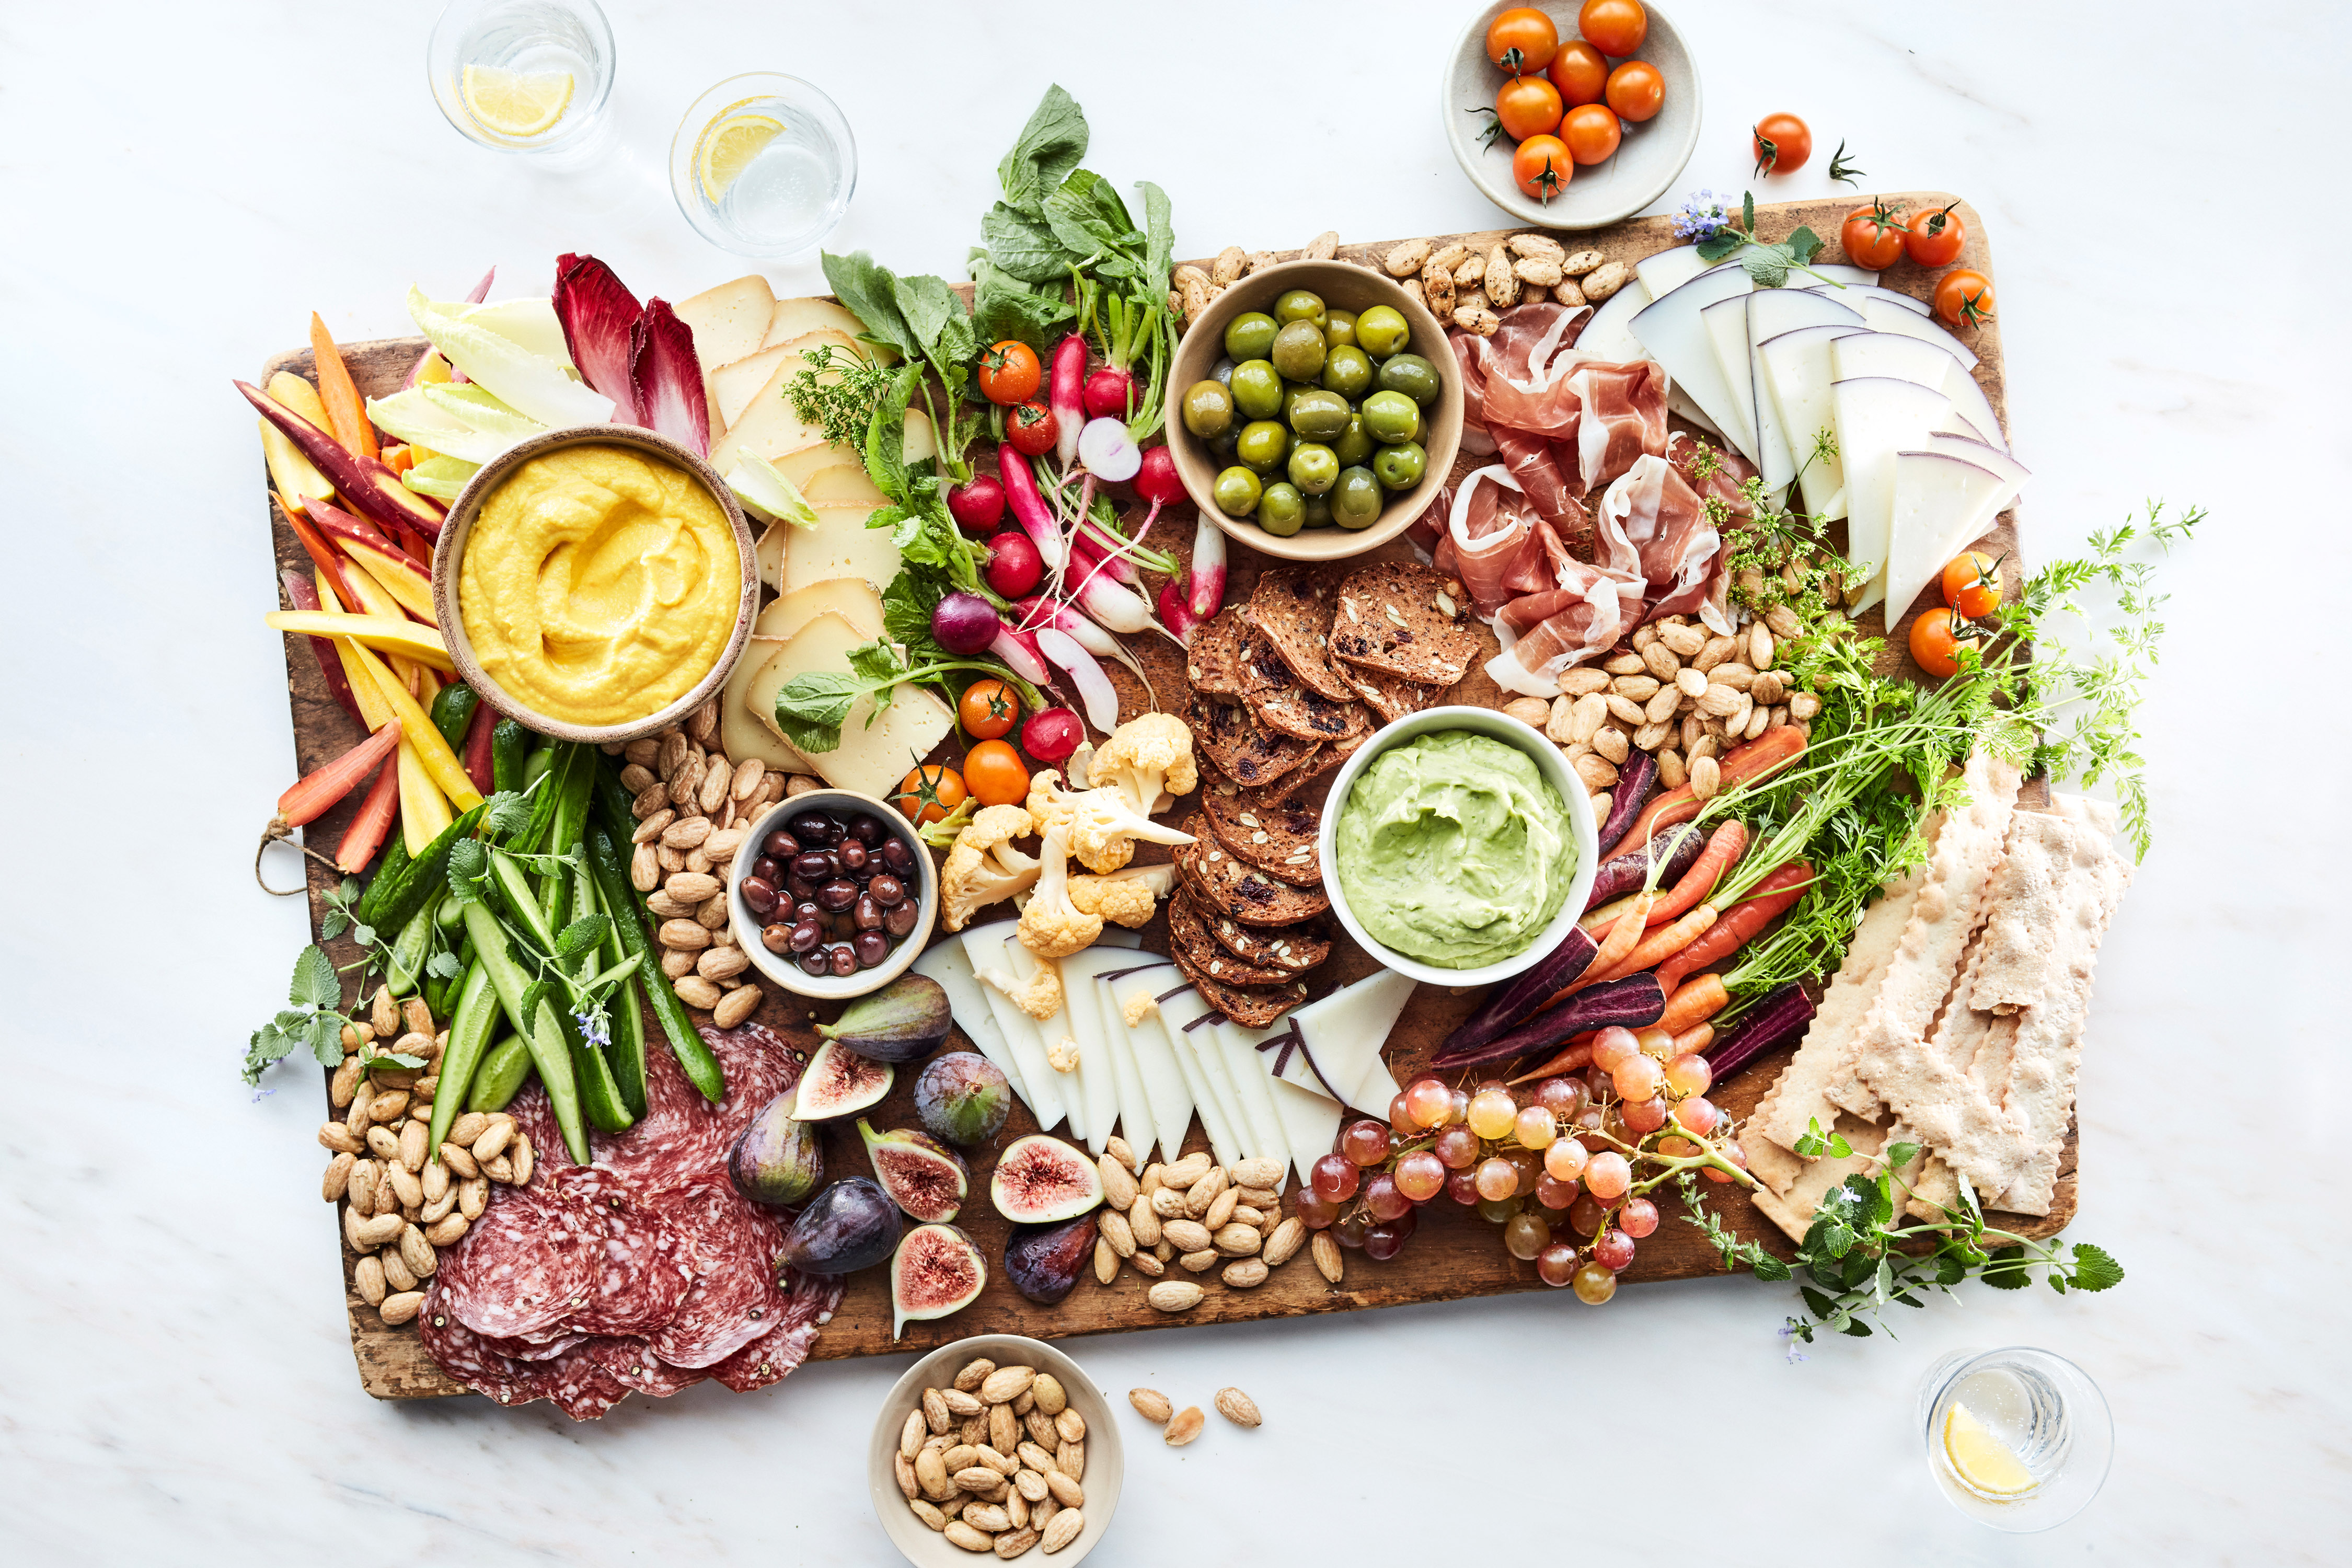 grazing board summer step 6 meats vegetables dips cheese bread wooden